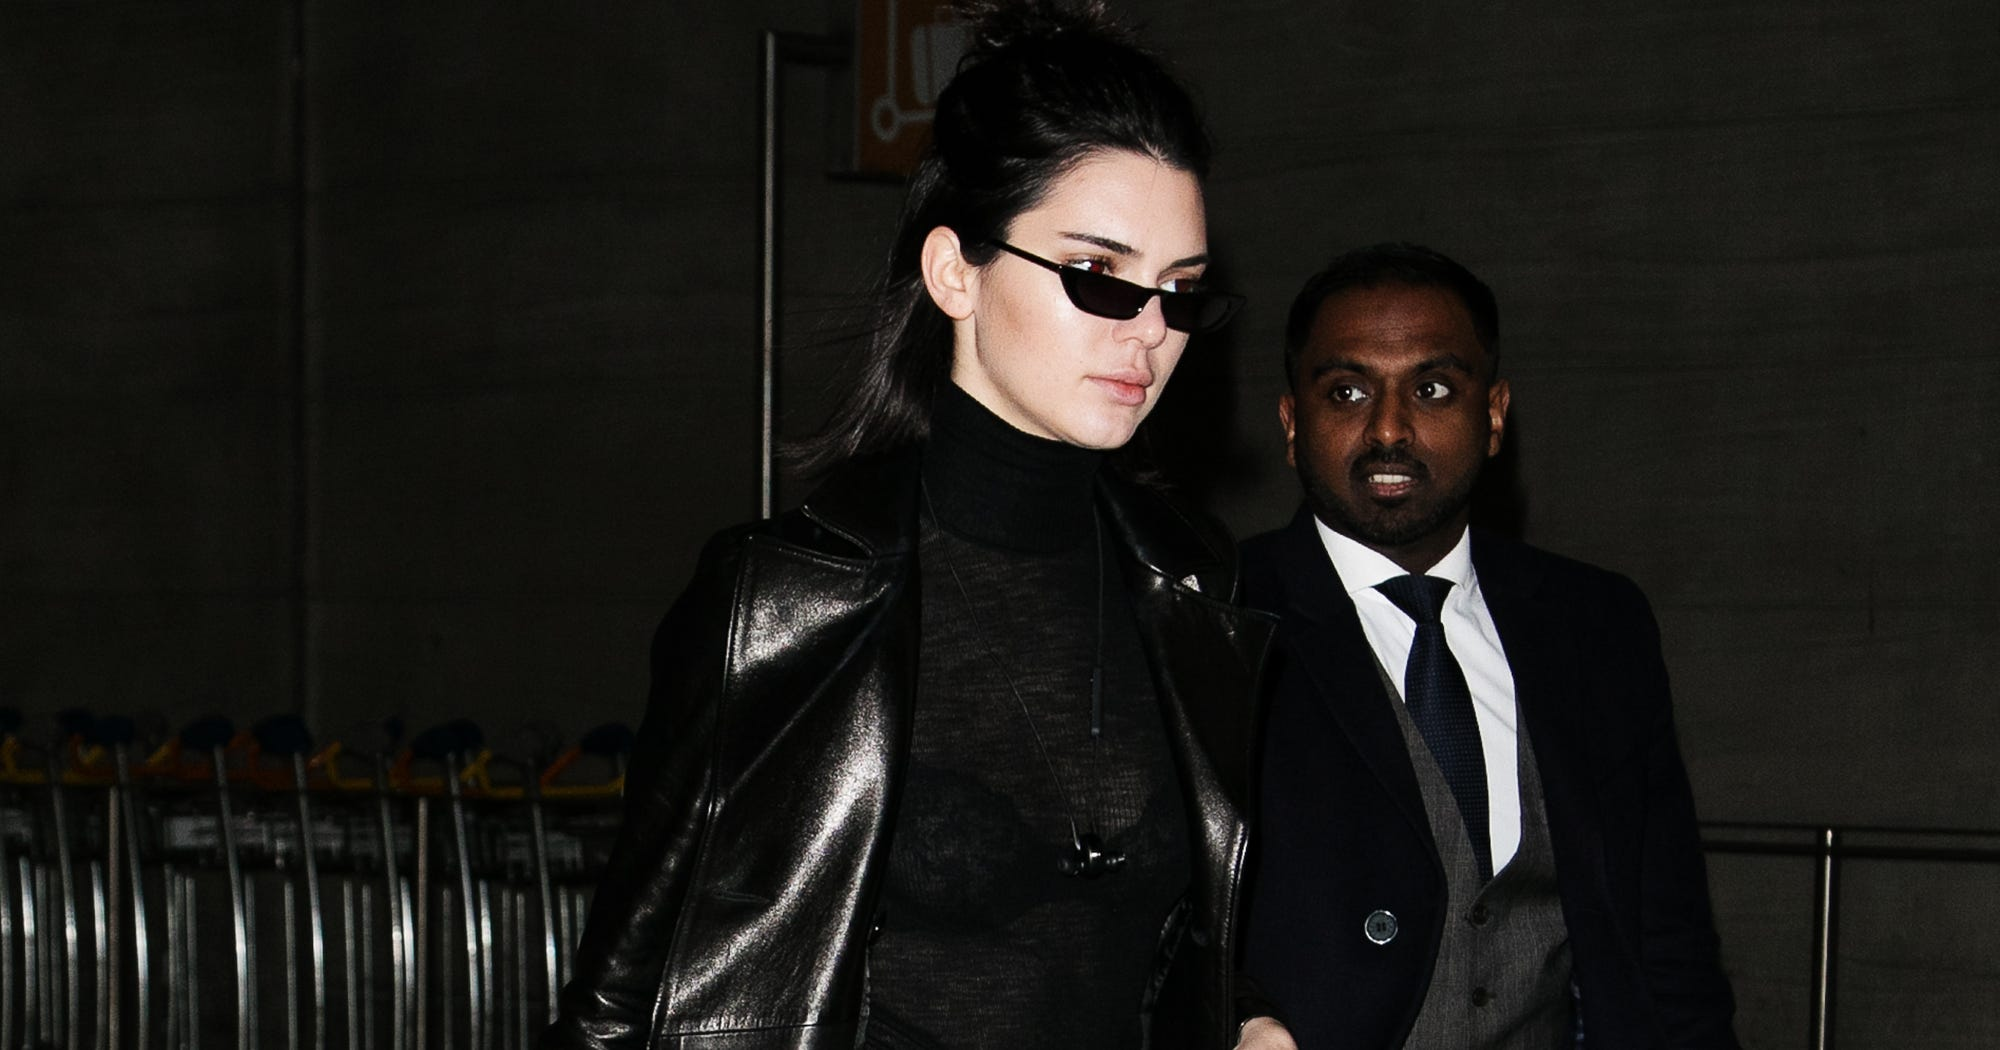 c32f1880815 Kendall Jenner Matrix Style Outfit Sunglasses Picks